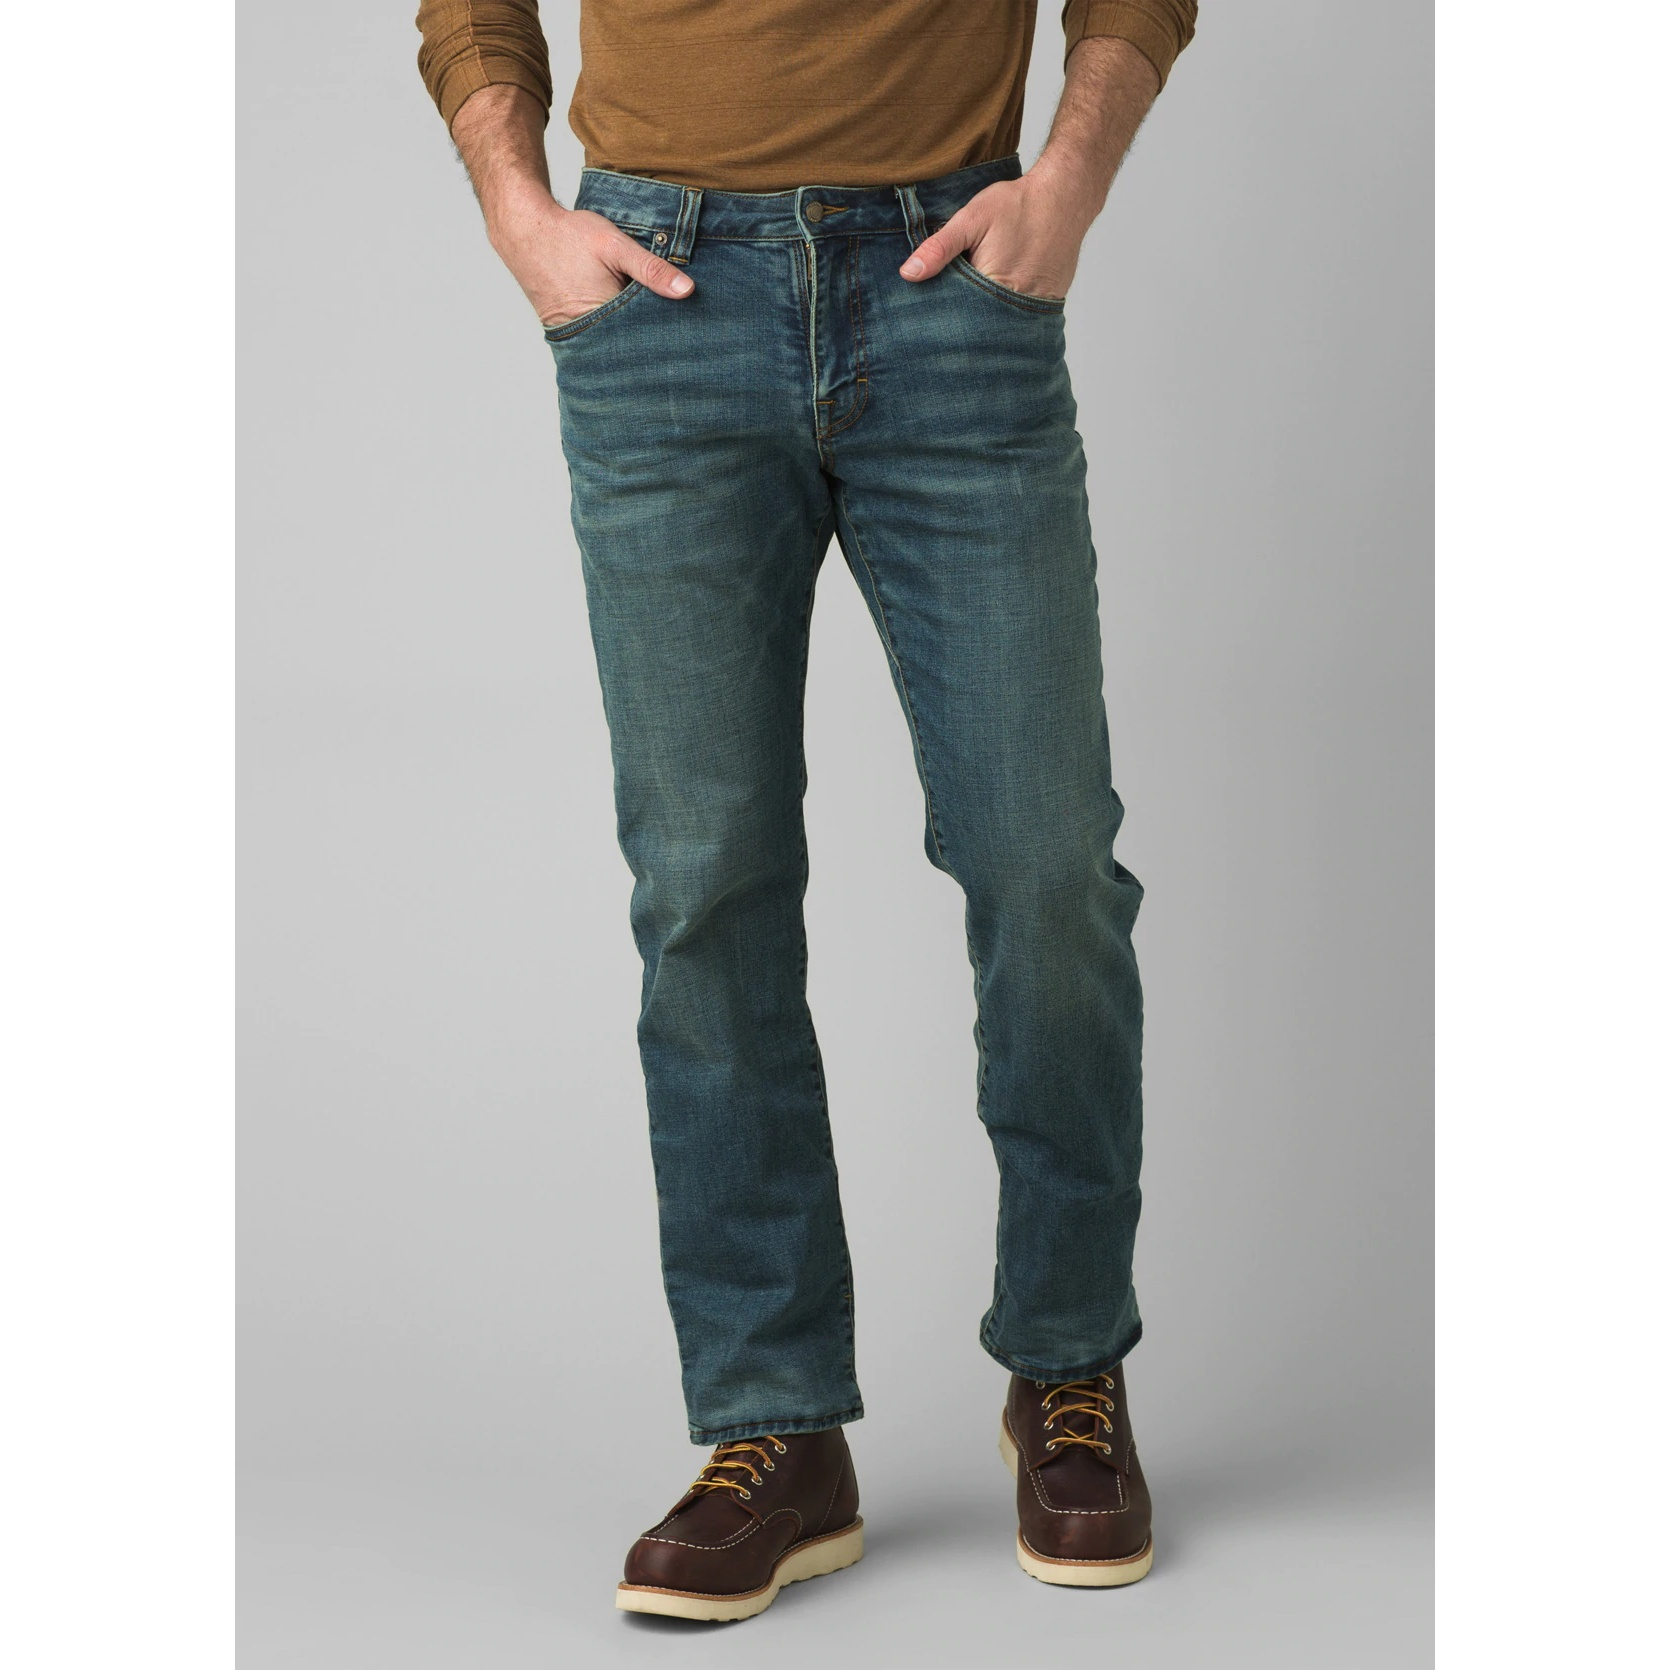 Hillgard Jean 32 in - Men's